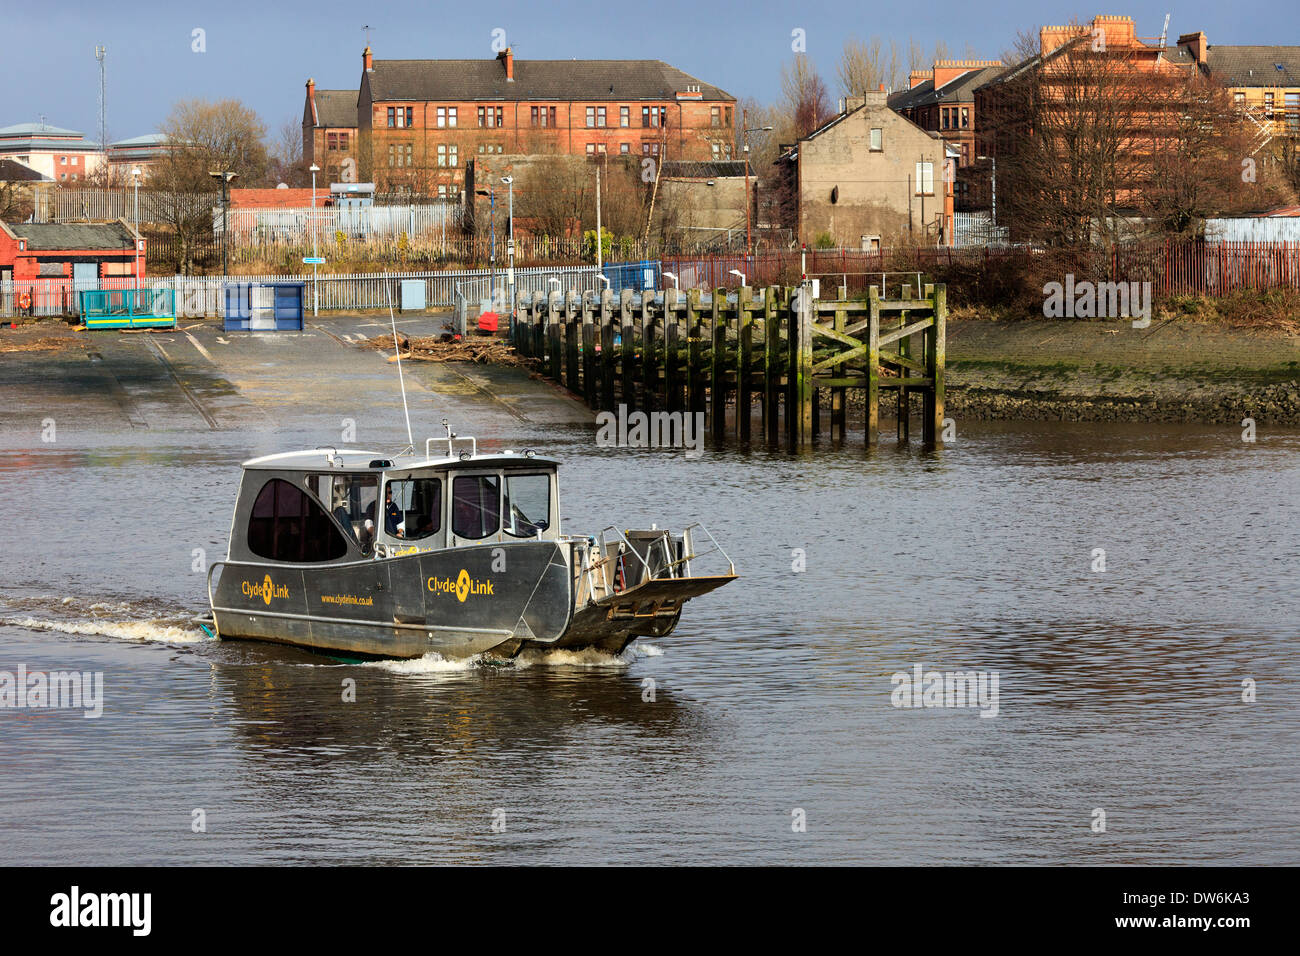 Renfrew ferry travelling between Yoker, Partick and Renfrew across the River Clyde and carrying only passengers, Glasgow - Stock Image